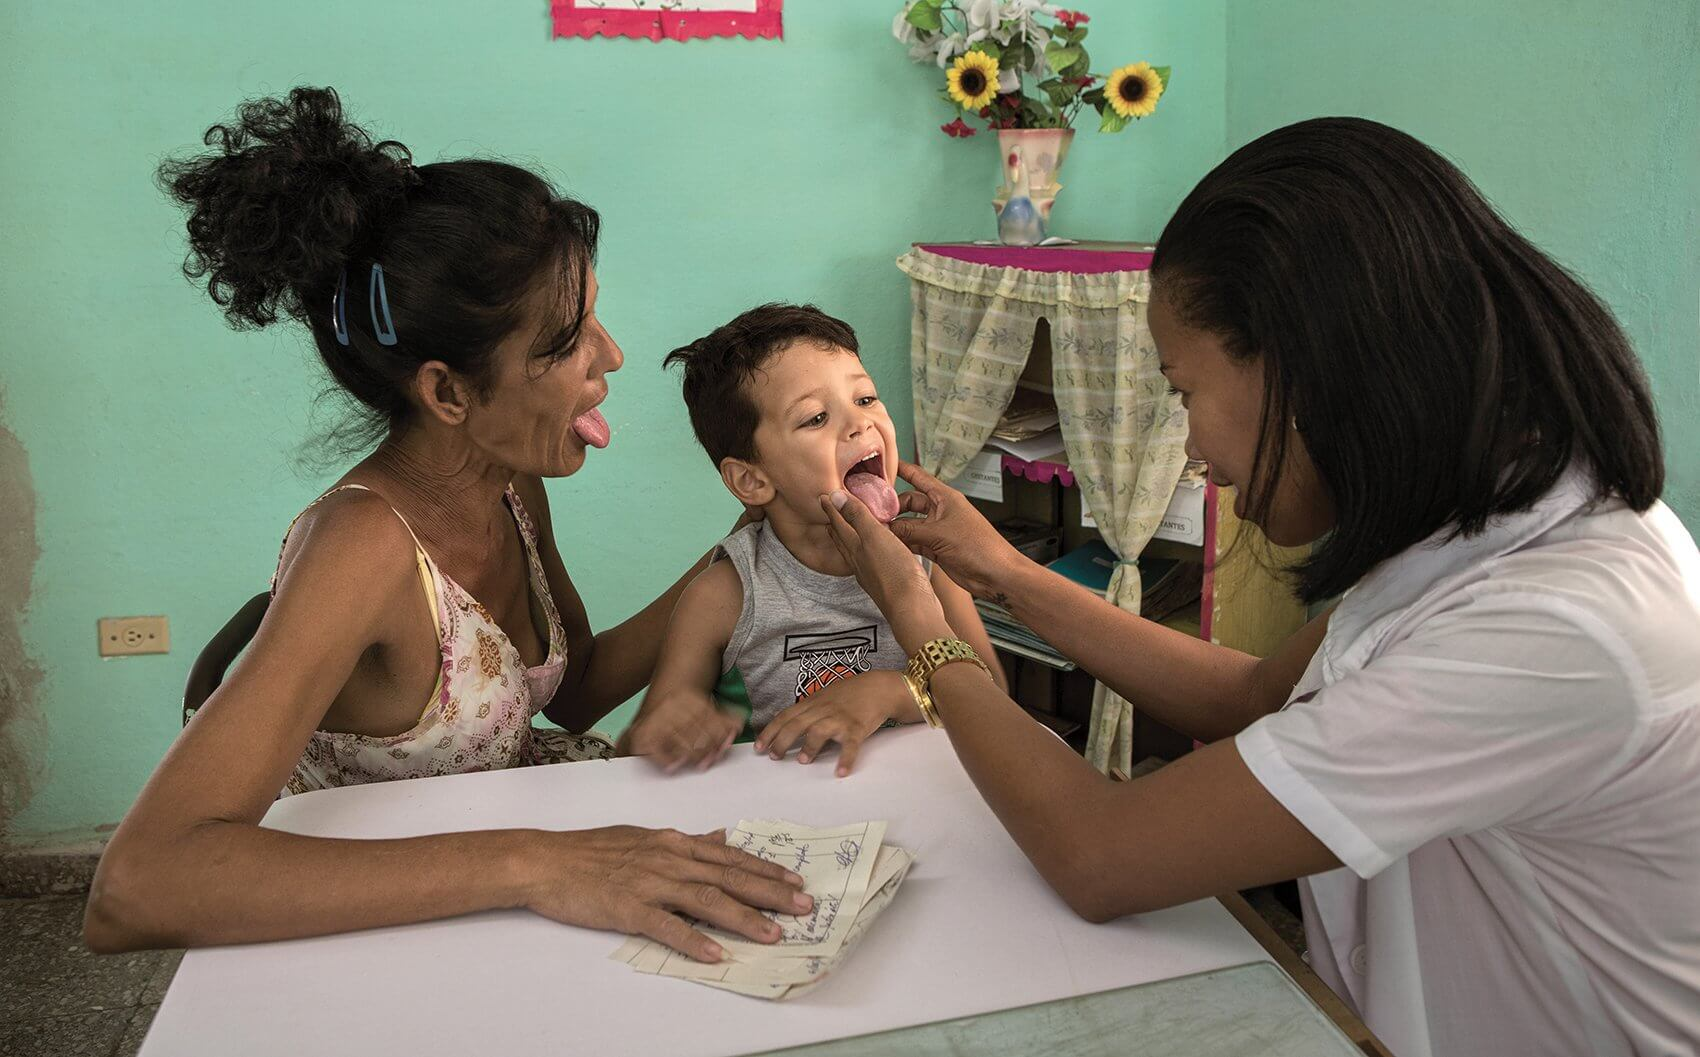 A young boy is examined in a Cuban health clinic. Credit: © Magnum Photographer Cristina Garcia Rodero